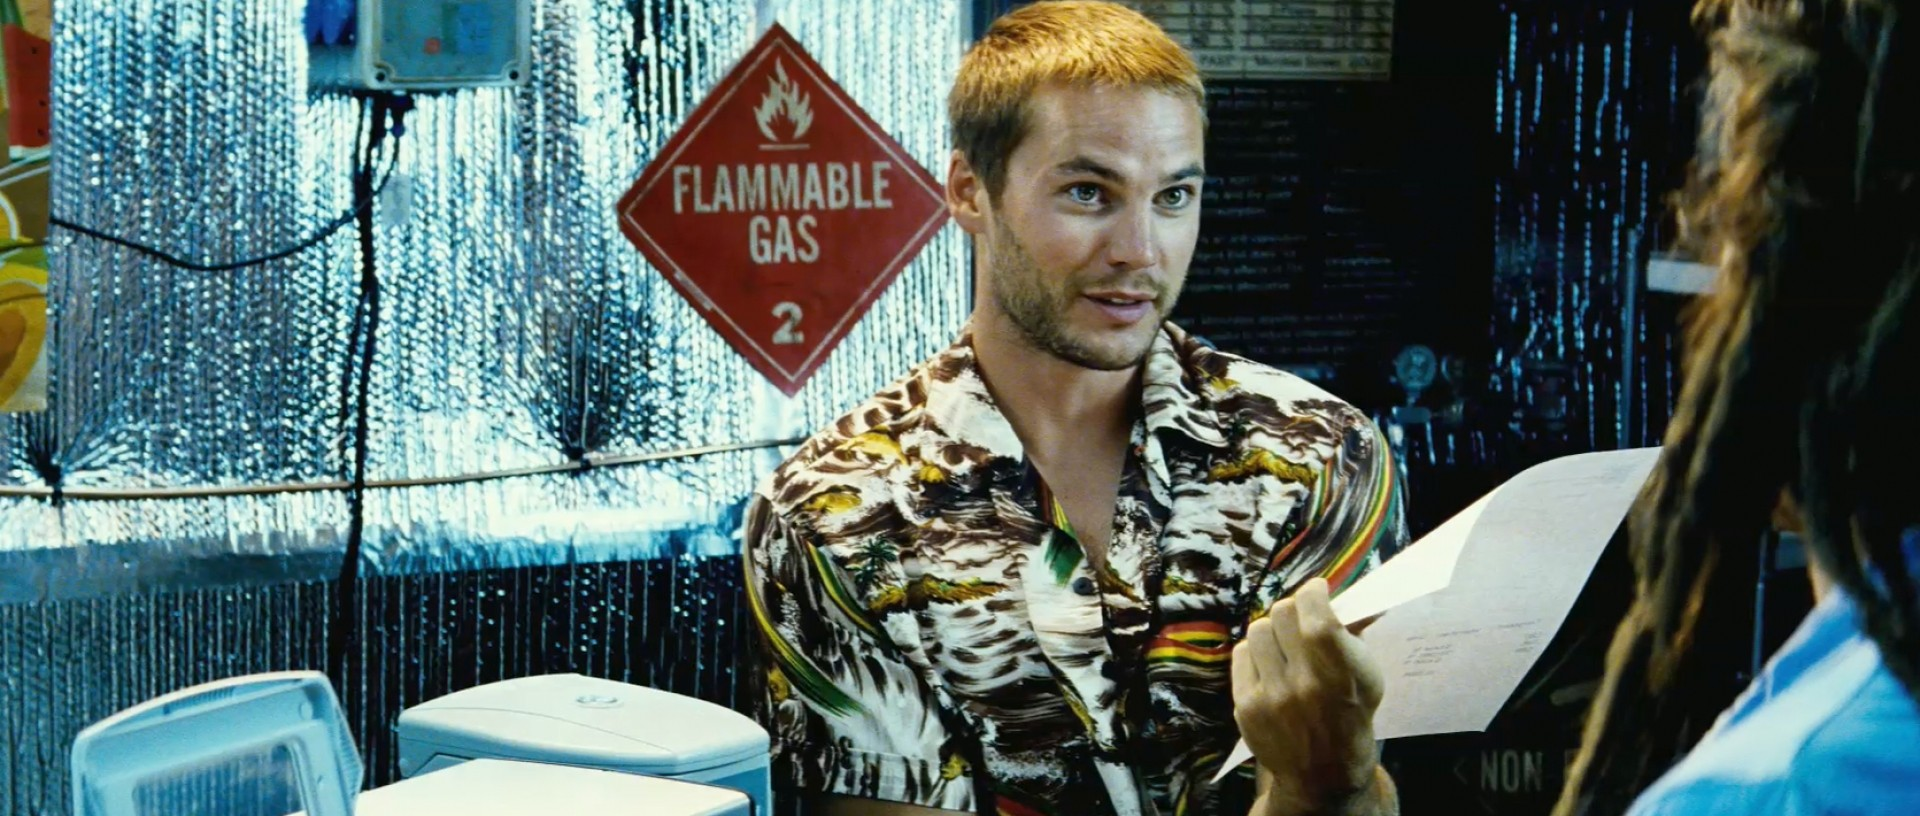 taylor-kitsch-as-chon-in-savages-2012